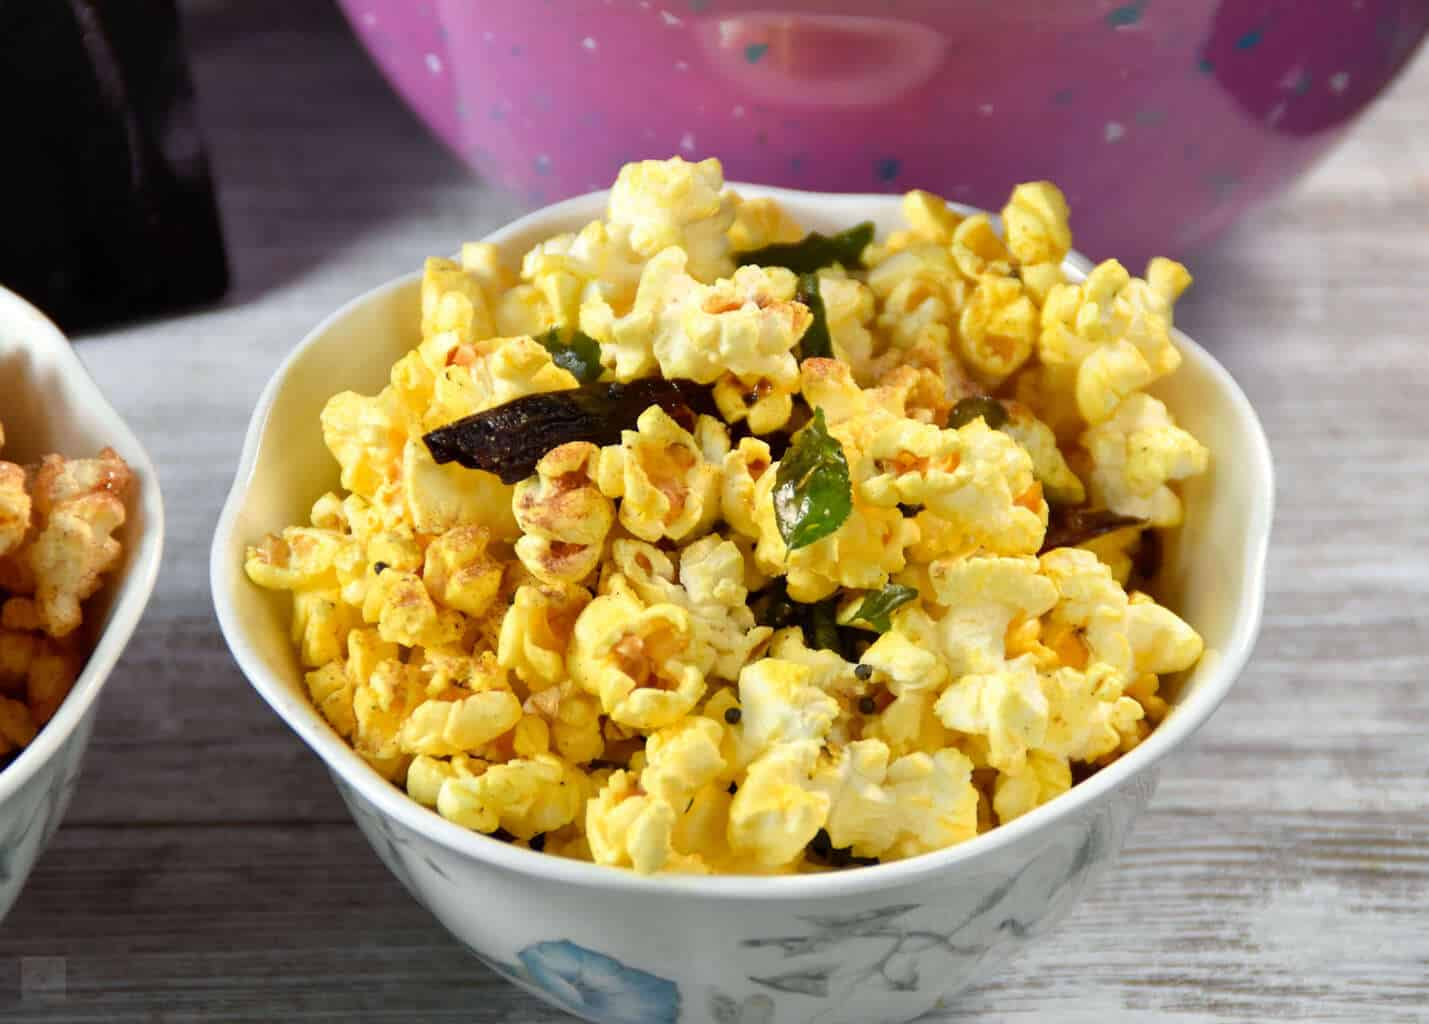 Curry leaves Popcorn and chocolate almond butter Popcorn for movie night date